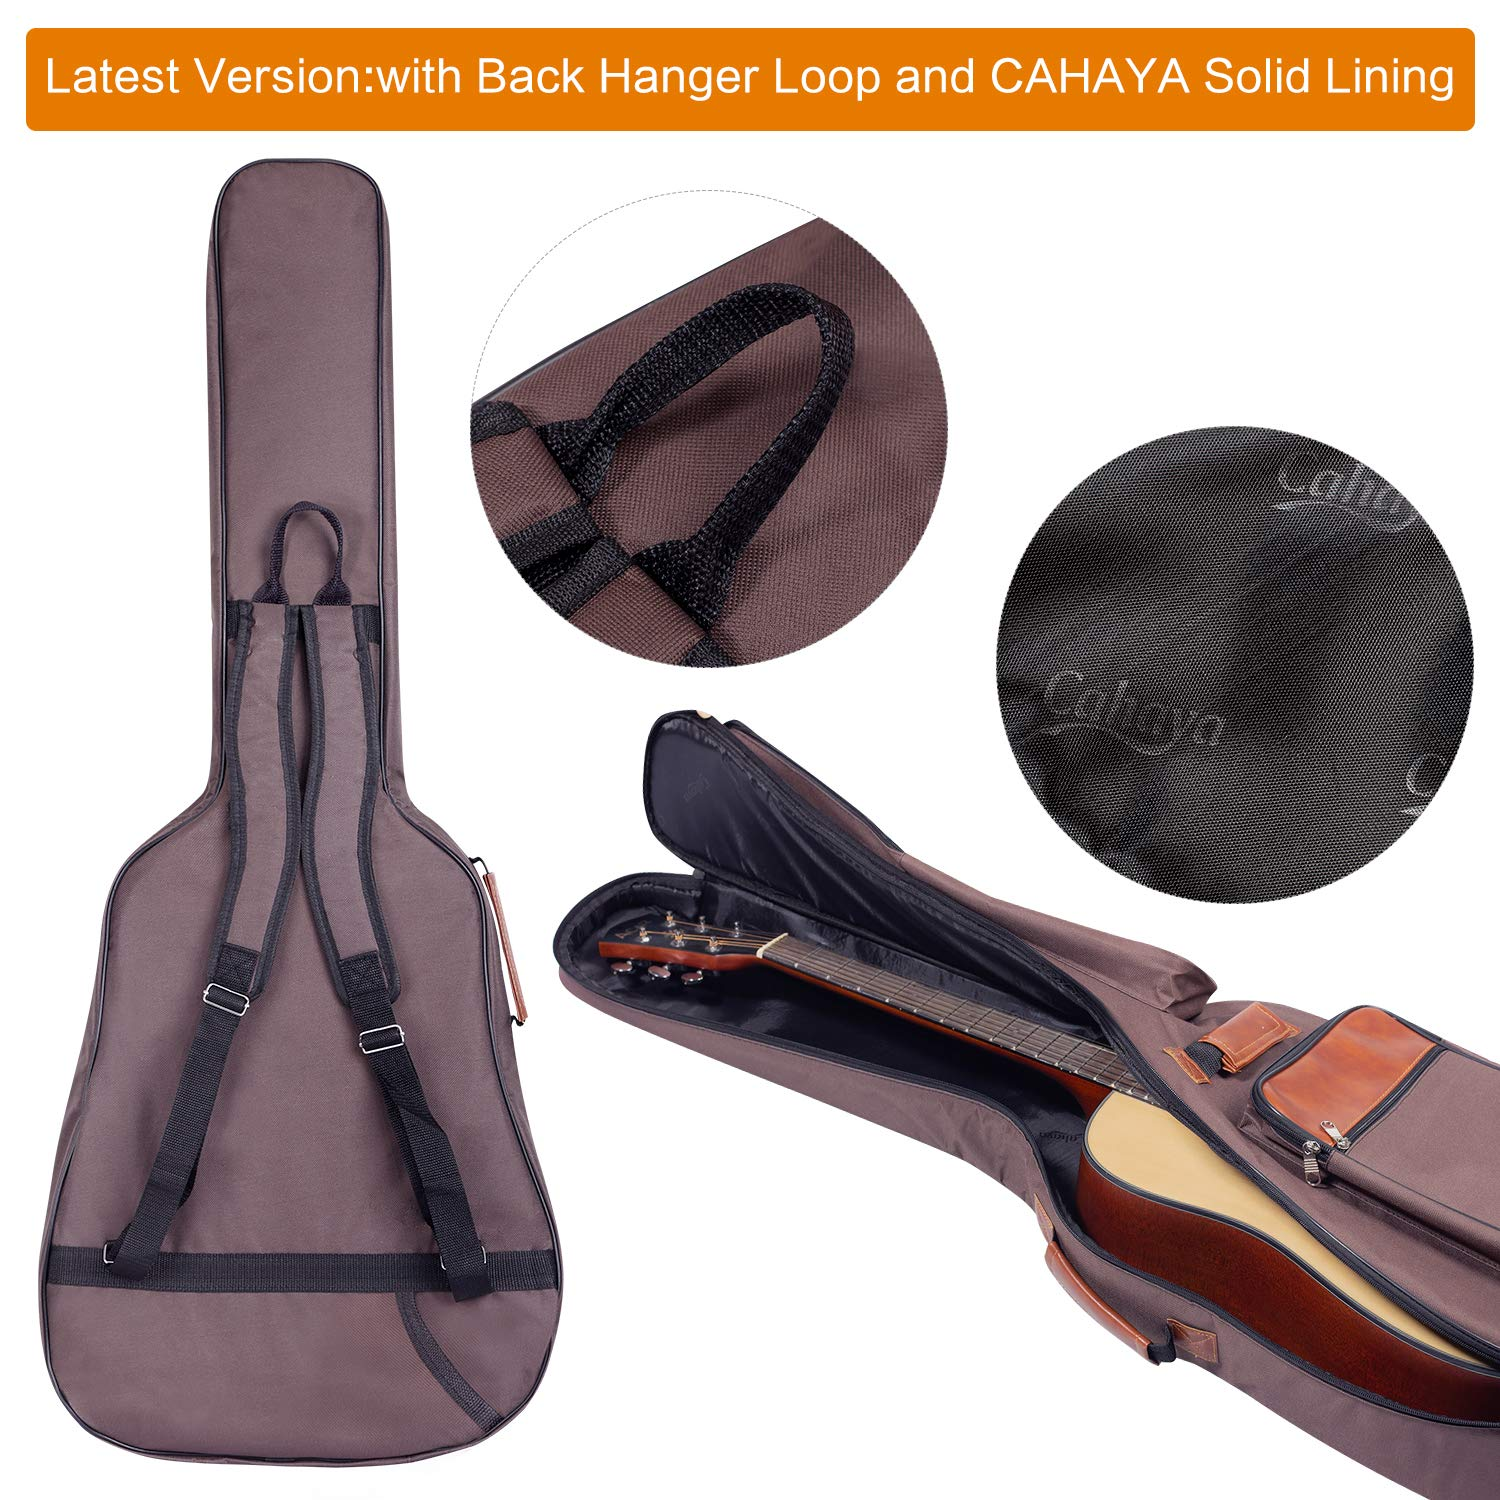 CAHAYA Guitar Bag 40 41 42 Inches 6 Pockets [Upgraded Premium Version] Guitar Case Waterproof Oxford Cloth 0.5 Inch Extra Thick Sponge Overly Padded with 5 Picks & Holder for Acoustic Classical Guitar by CAHAYA (Image #2)